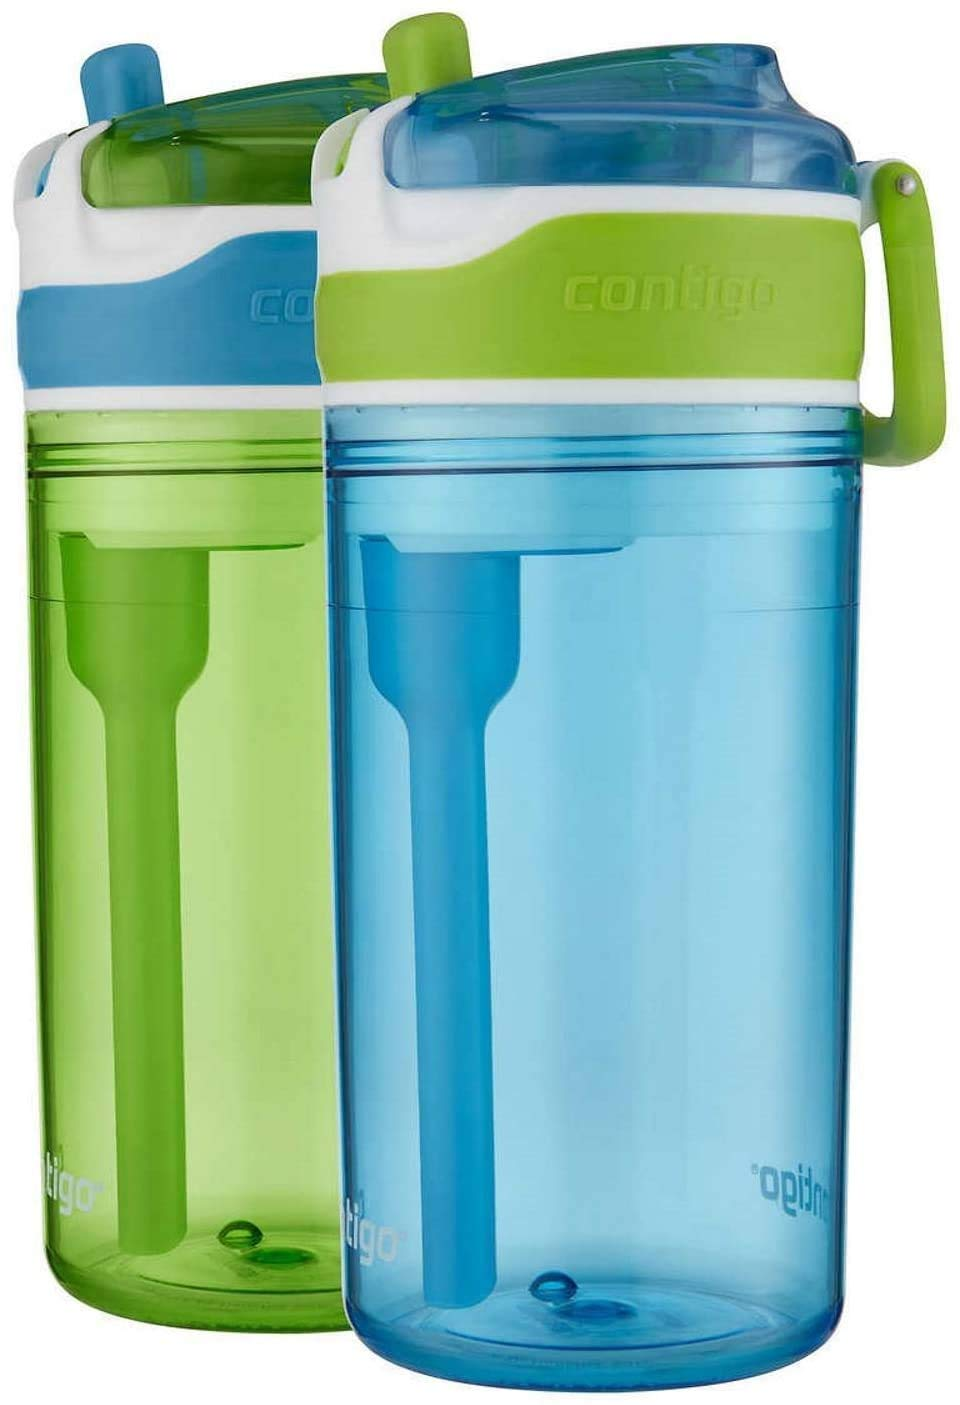 Spill-proof 4oz Snack Container Screws Securely onto 12oz Tumbler With Accessible Straw. All-In-One Drink Tumbler Snack Container For Toddlers ages 3 Green